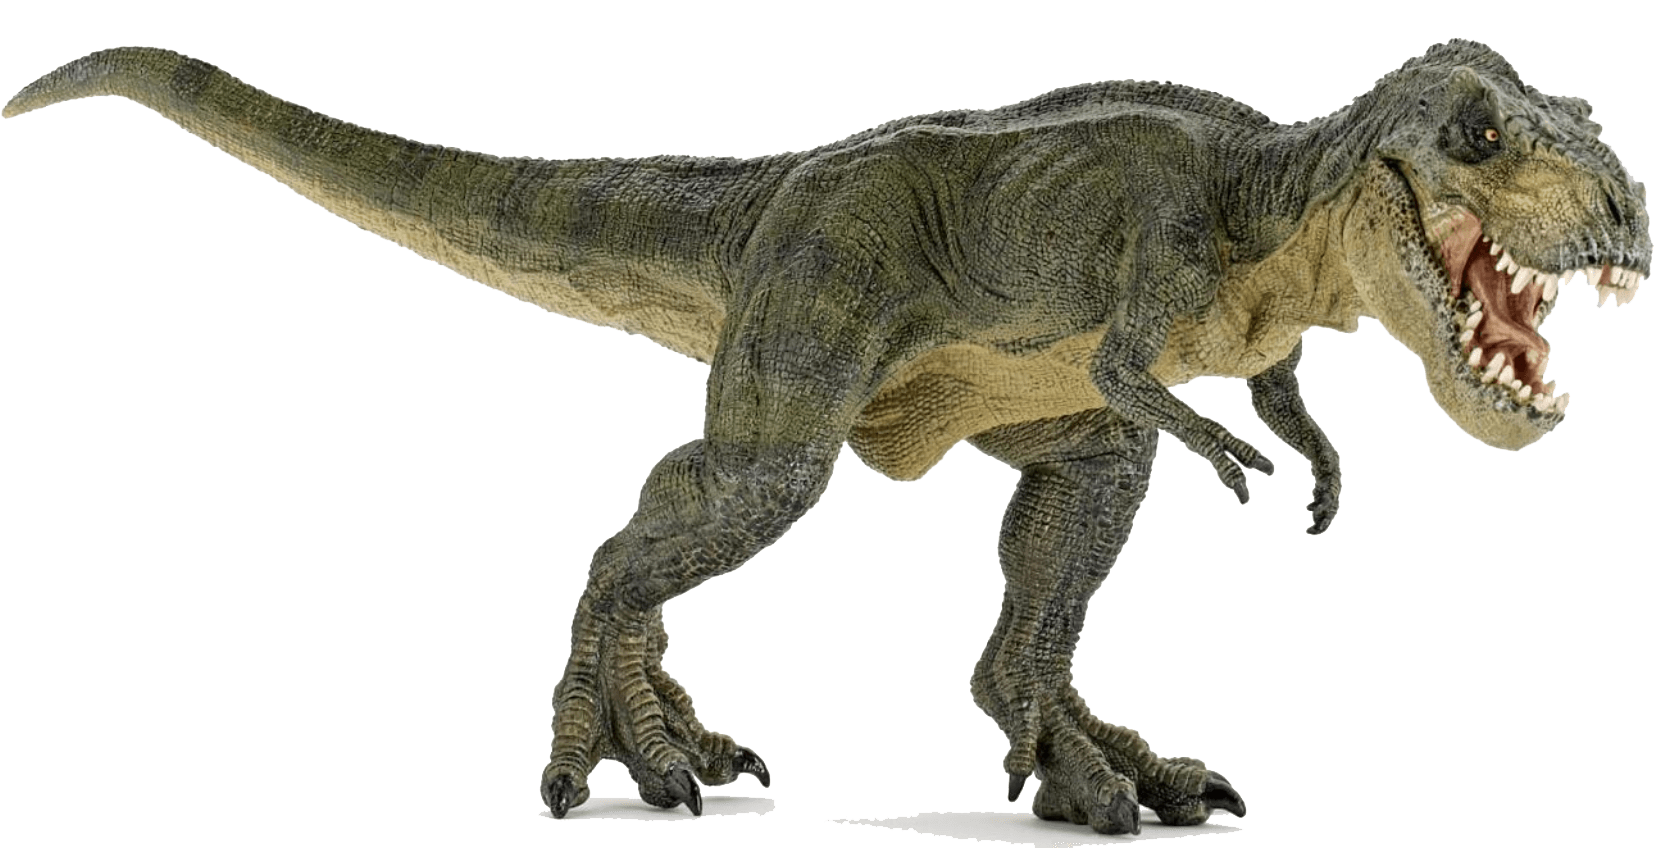 Trex png transparent background. Dinosaurs images stickpng dinosaur